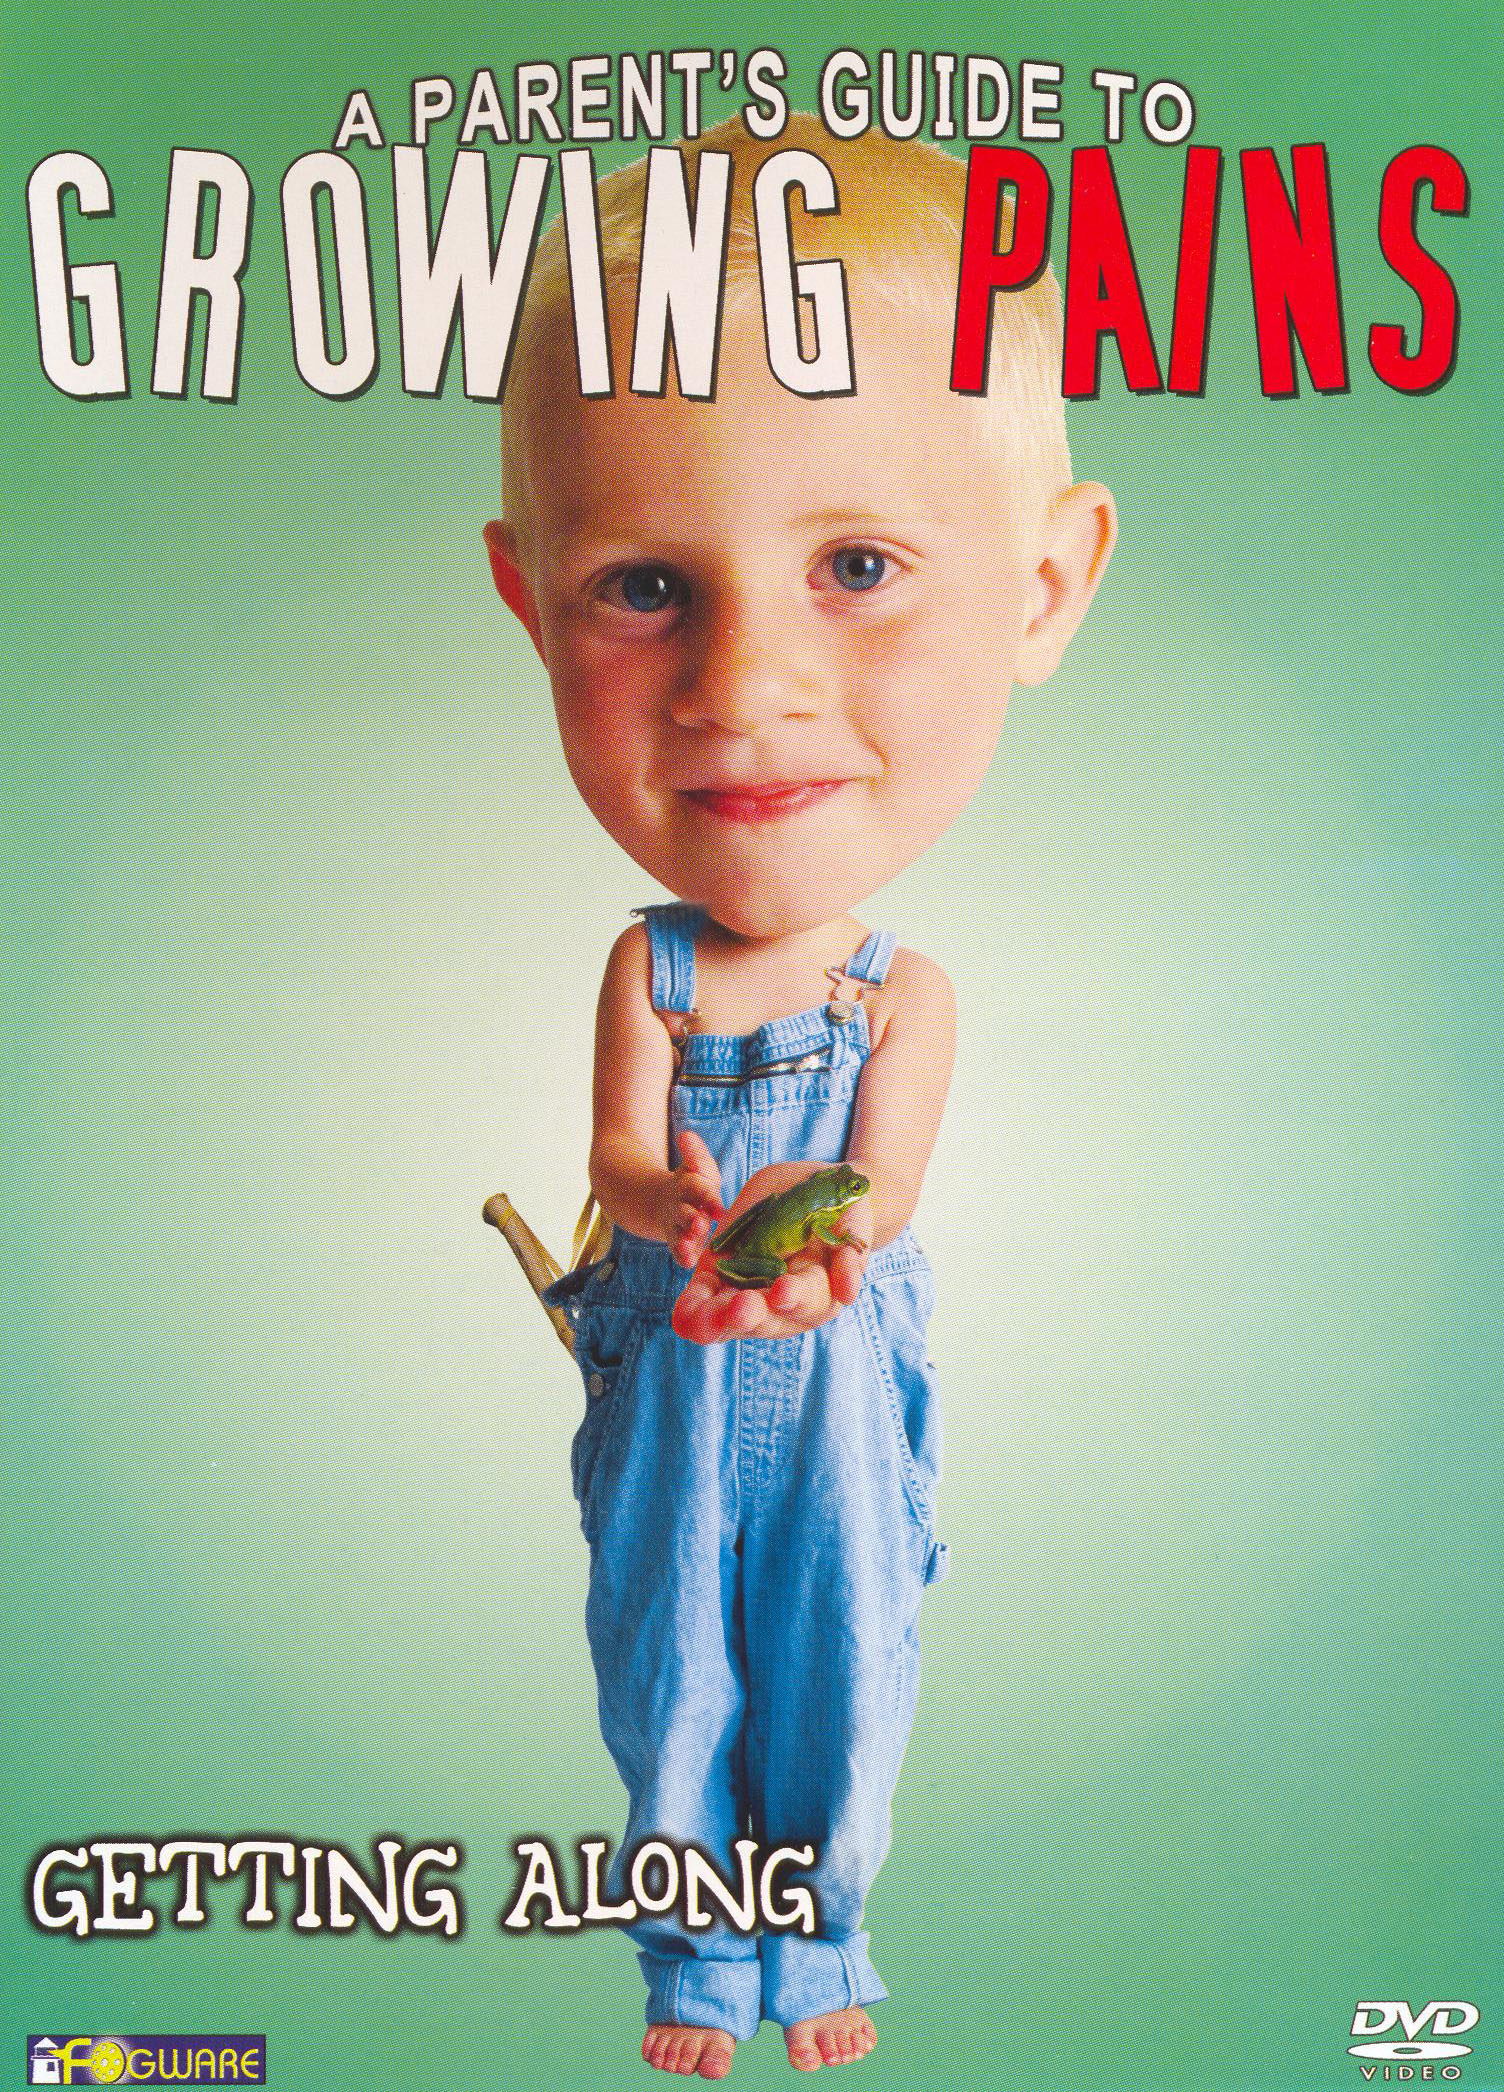 A Parent's Guide to Growing Pains: Getting Along